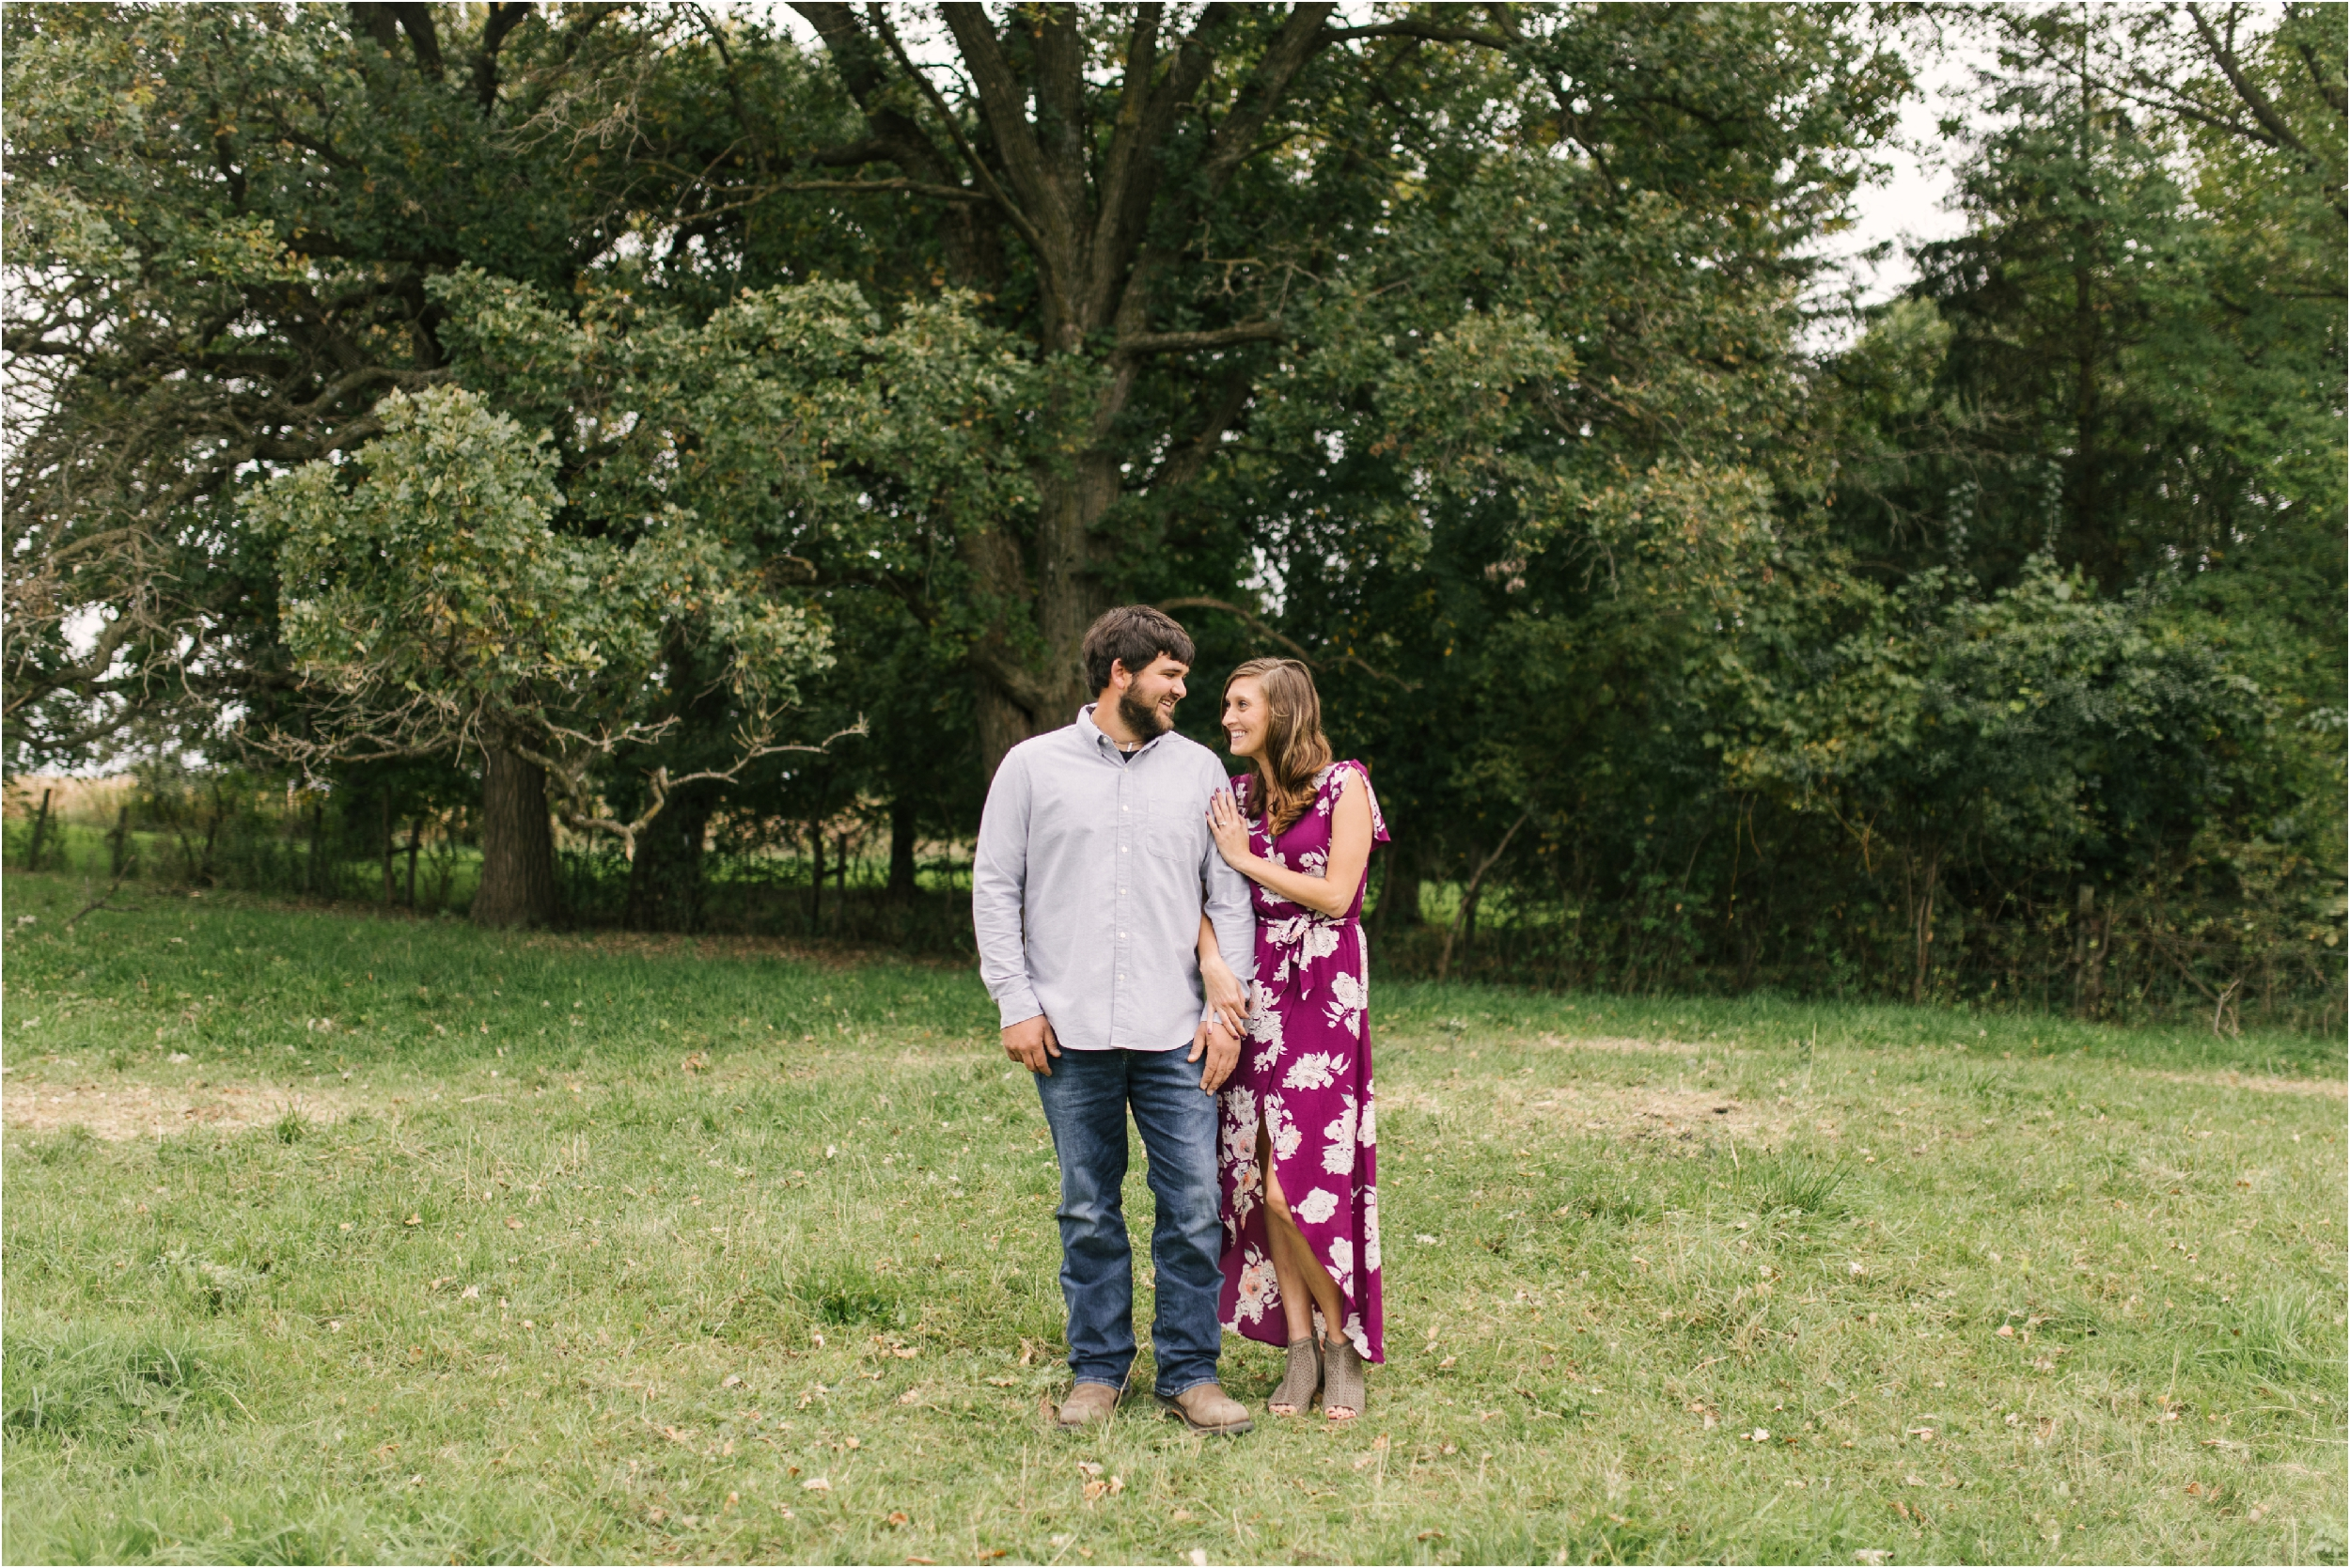 Countryside Engagement Photos_ Minnesota Wedding Photographer_Stephanie Lynn Photography_0057.jpg